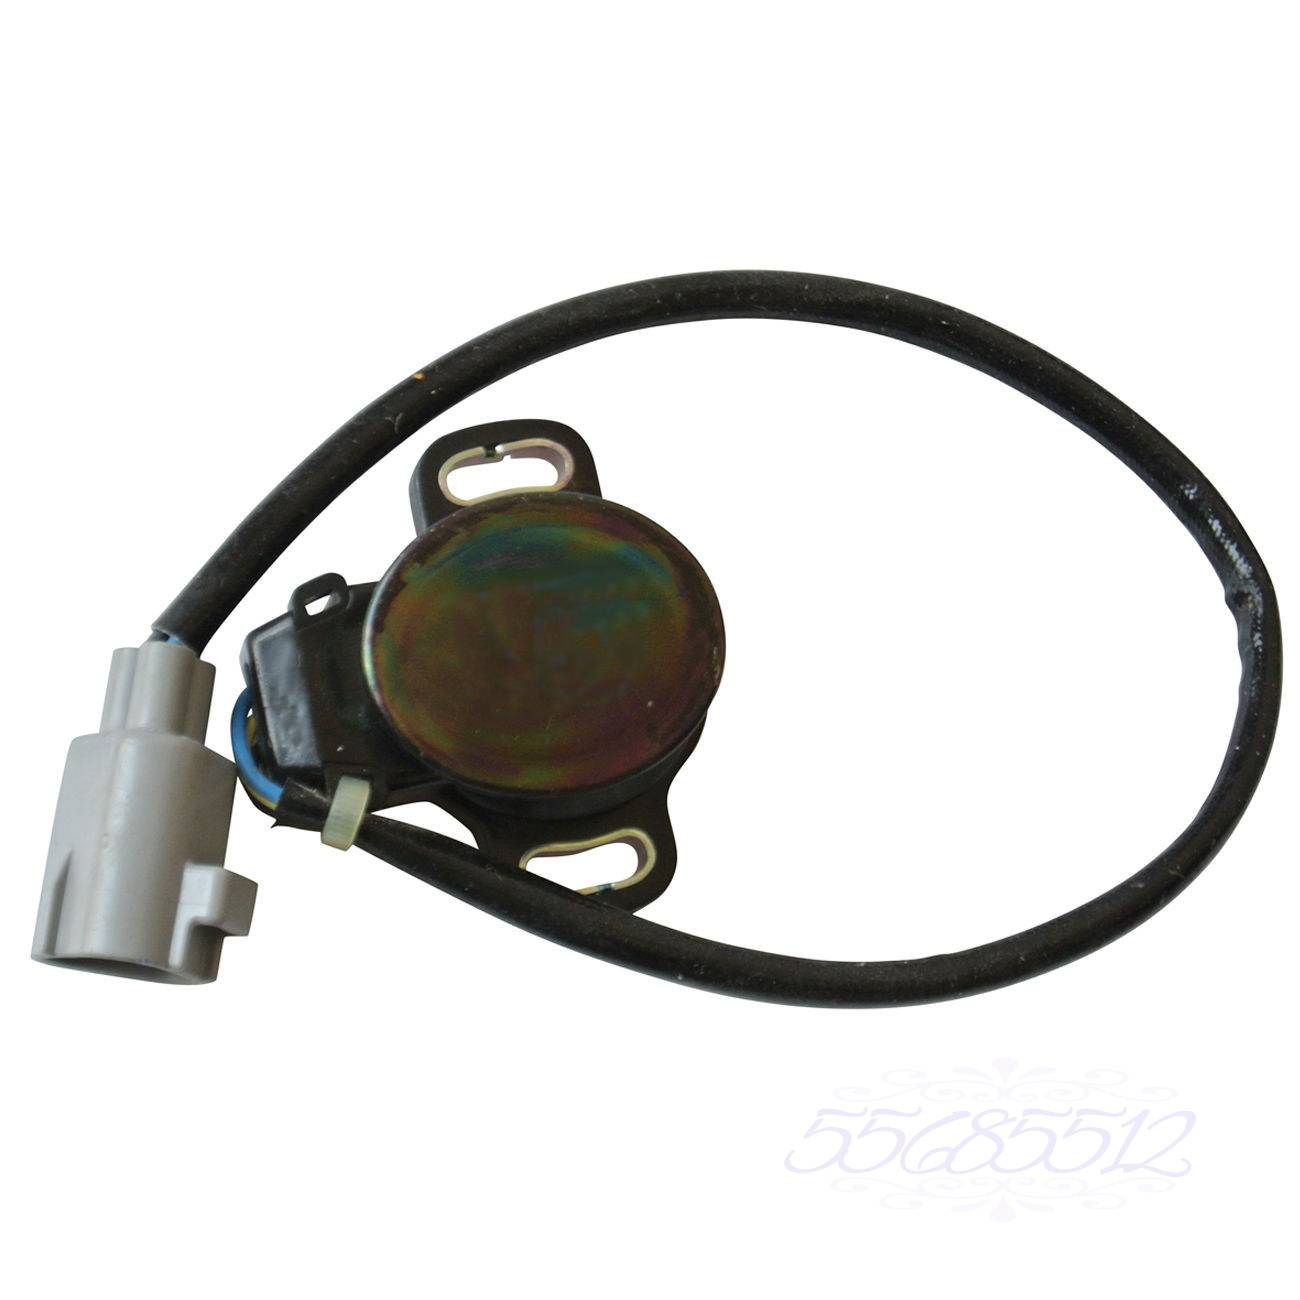 US $22 79 5% OFF|Throttle Position Sensor For Toyota Land Cruiser, HDJ80,  HDJ81, HZJ81 8945236010-in Sensors & Switches from Automobiles &  Motorcycles